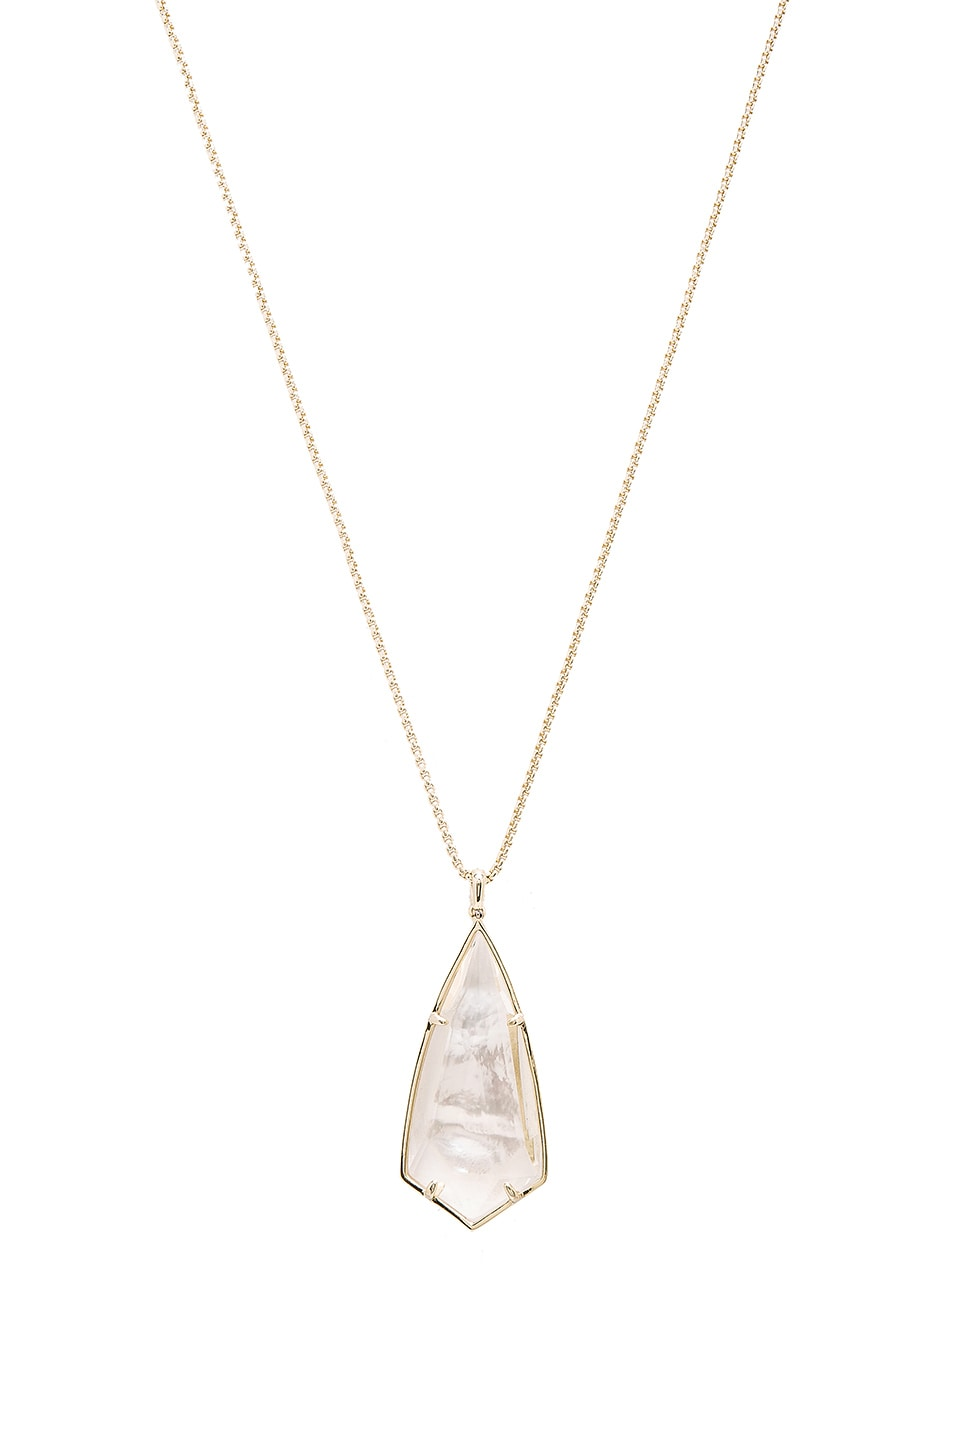 Kendra Scott Carole Necklace in Gold & Ivory Mother Of Pearl